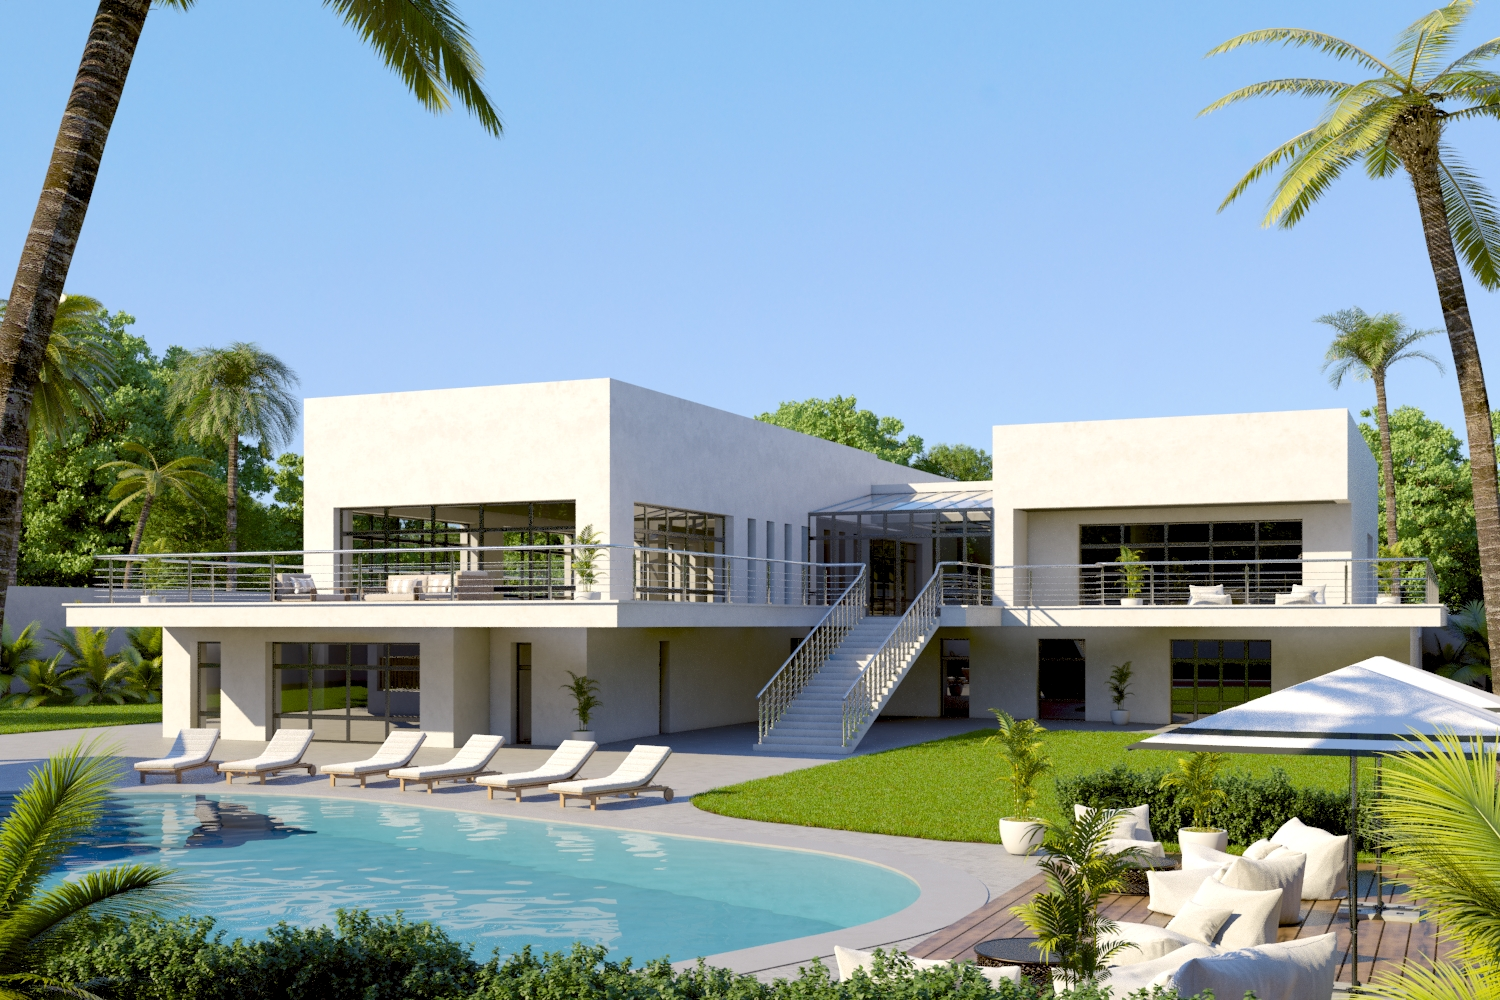 Villa with Pool CGI